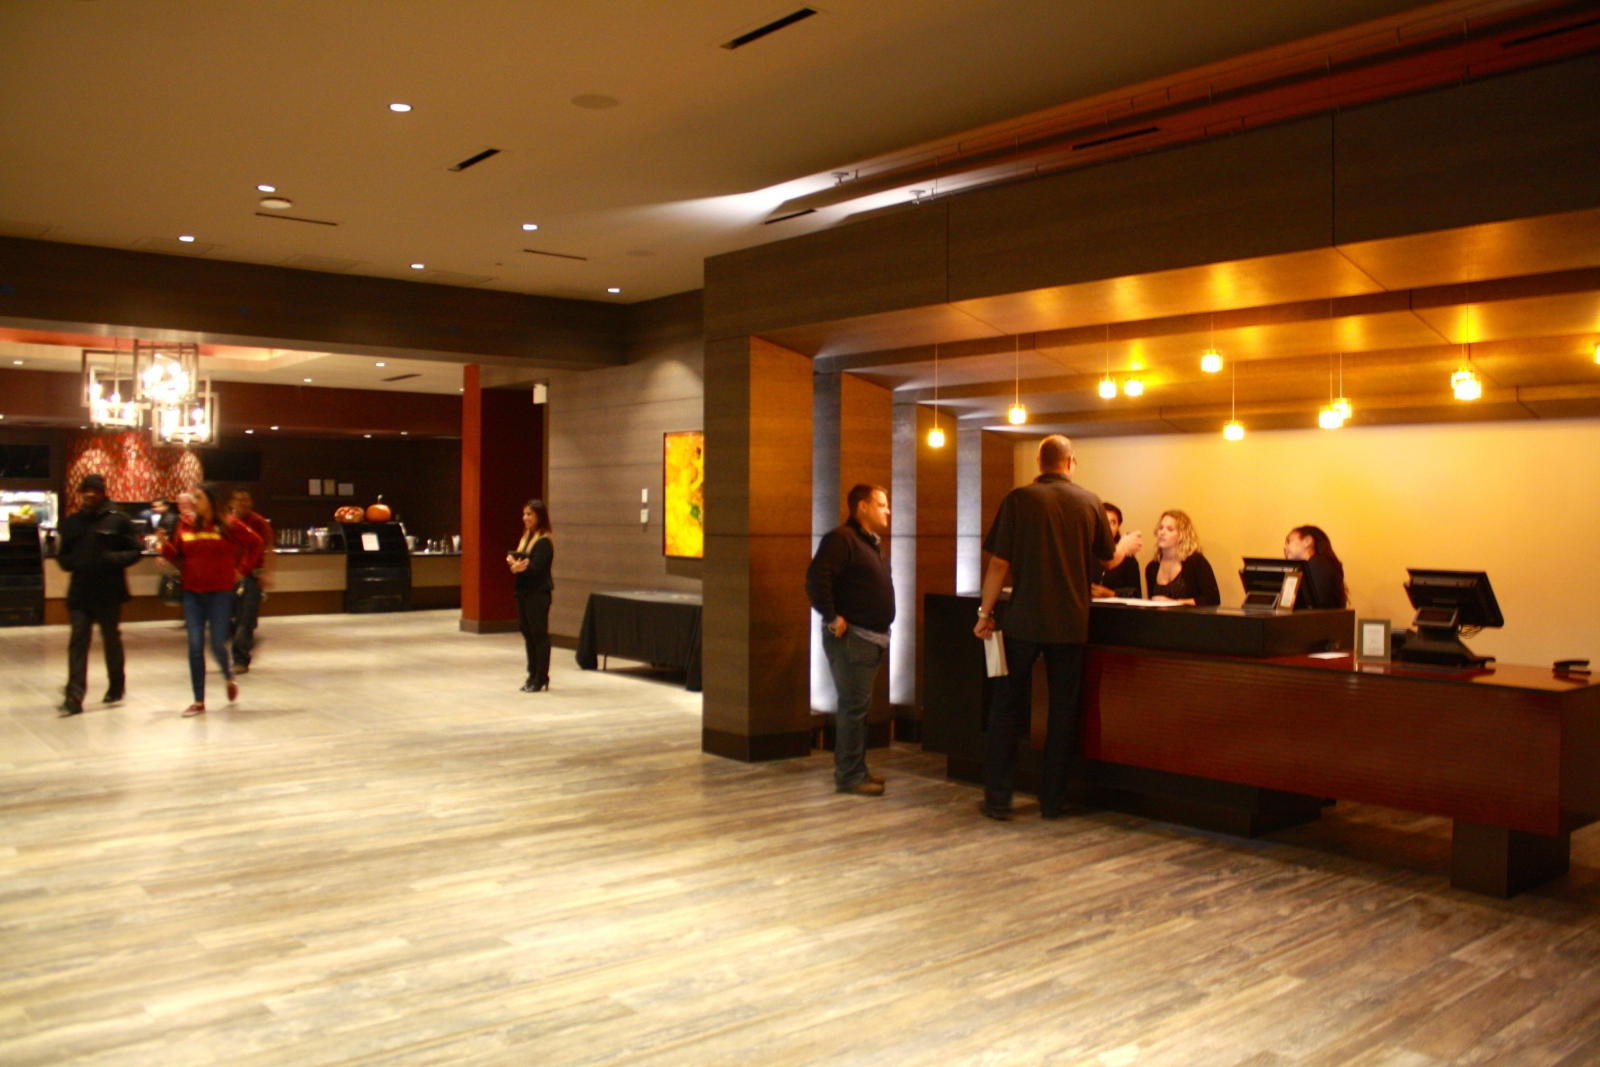 Ipic Brings Luxury Movie Theater Experience To Pike Rose